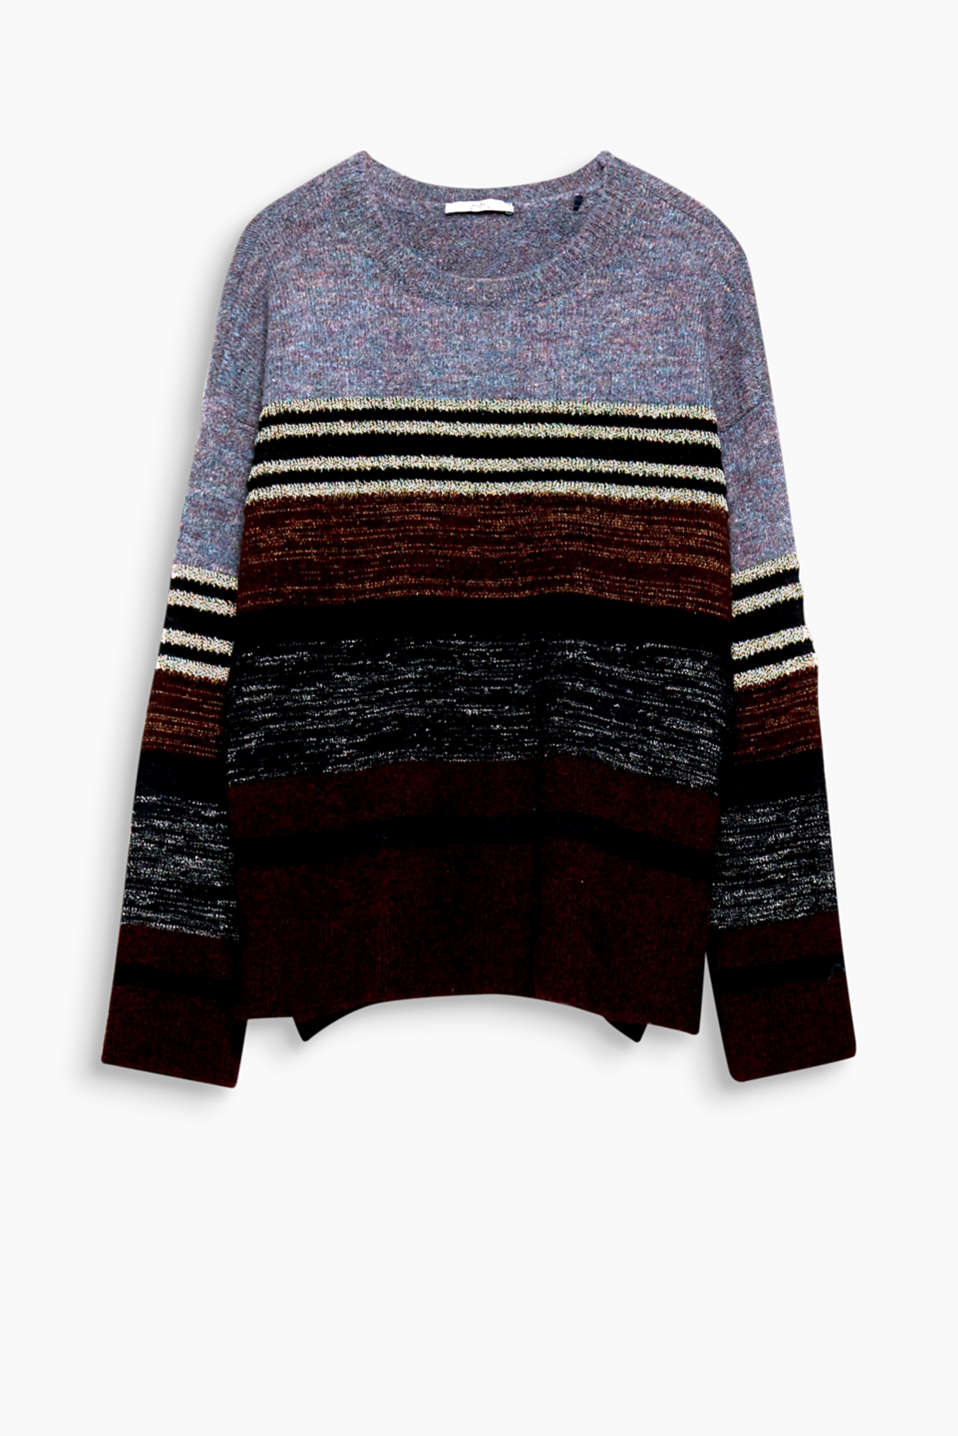 The uneven stripes with multi-coloured, shimmering lurex give this jumper its special look!